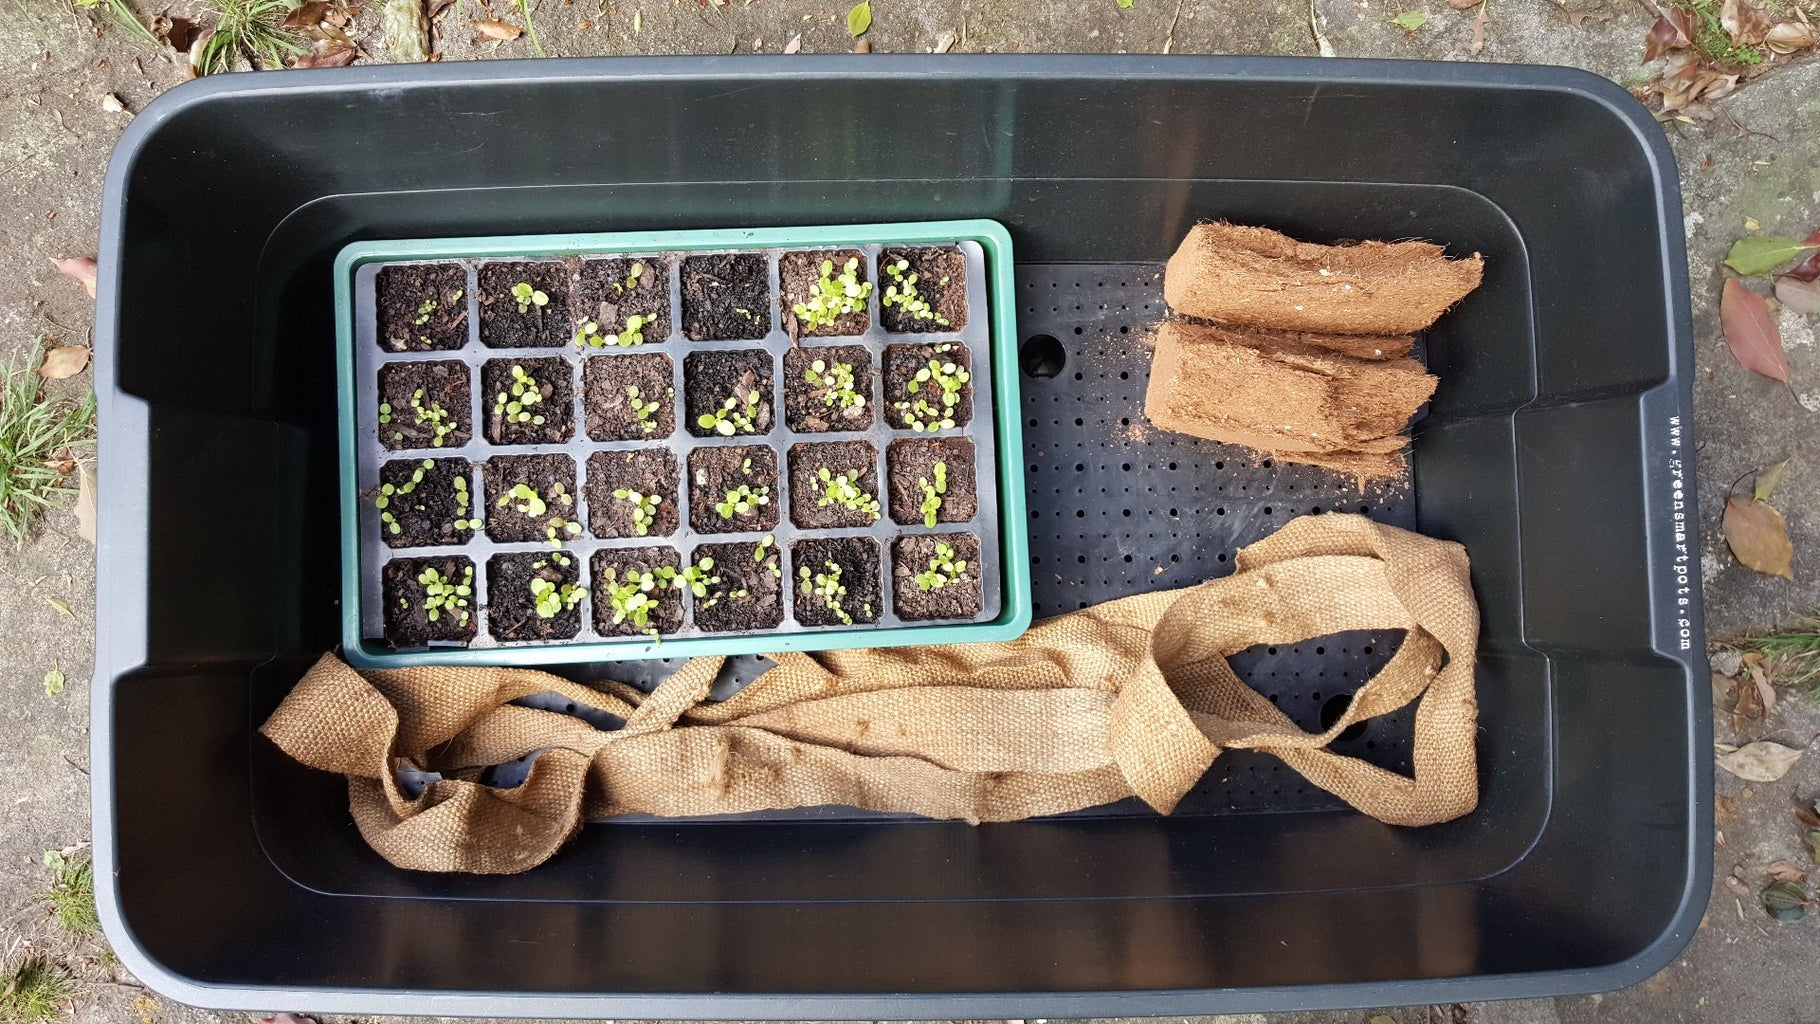 How to Set Up a Vermiponic Wicking Bed